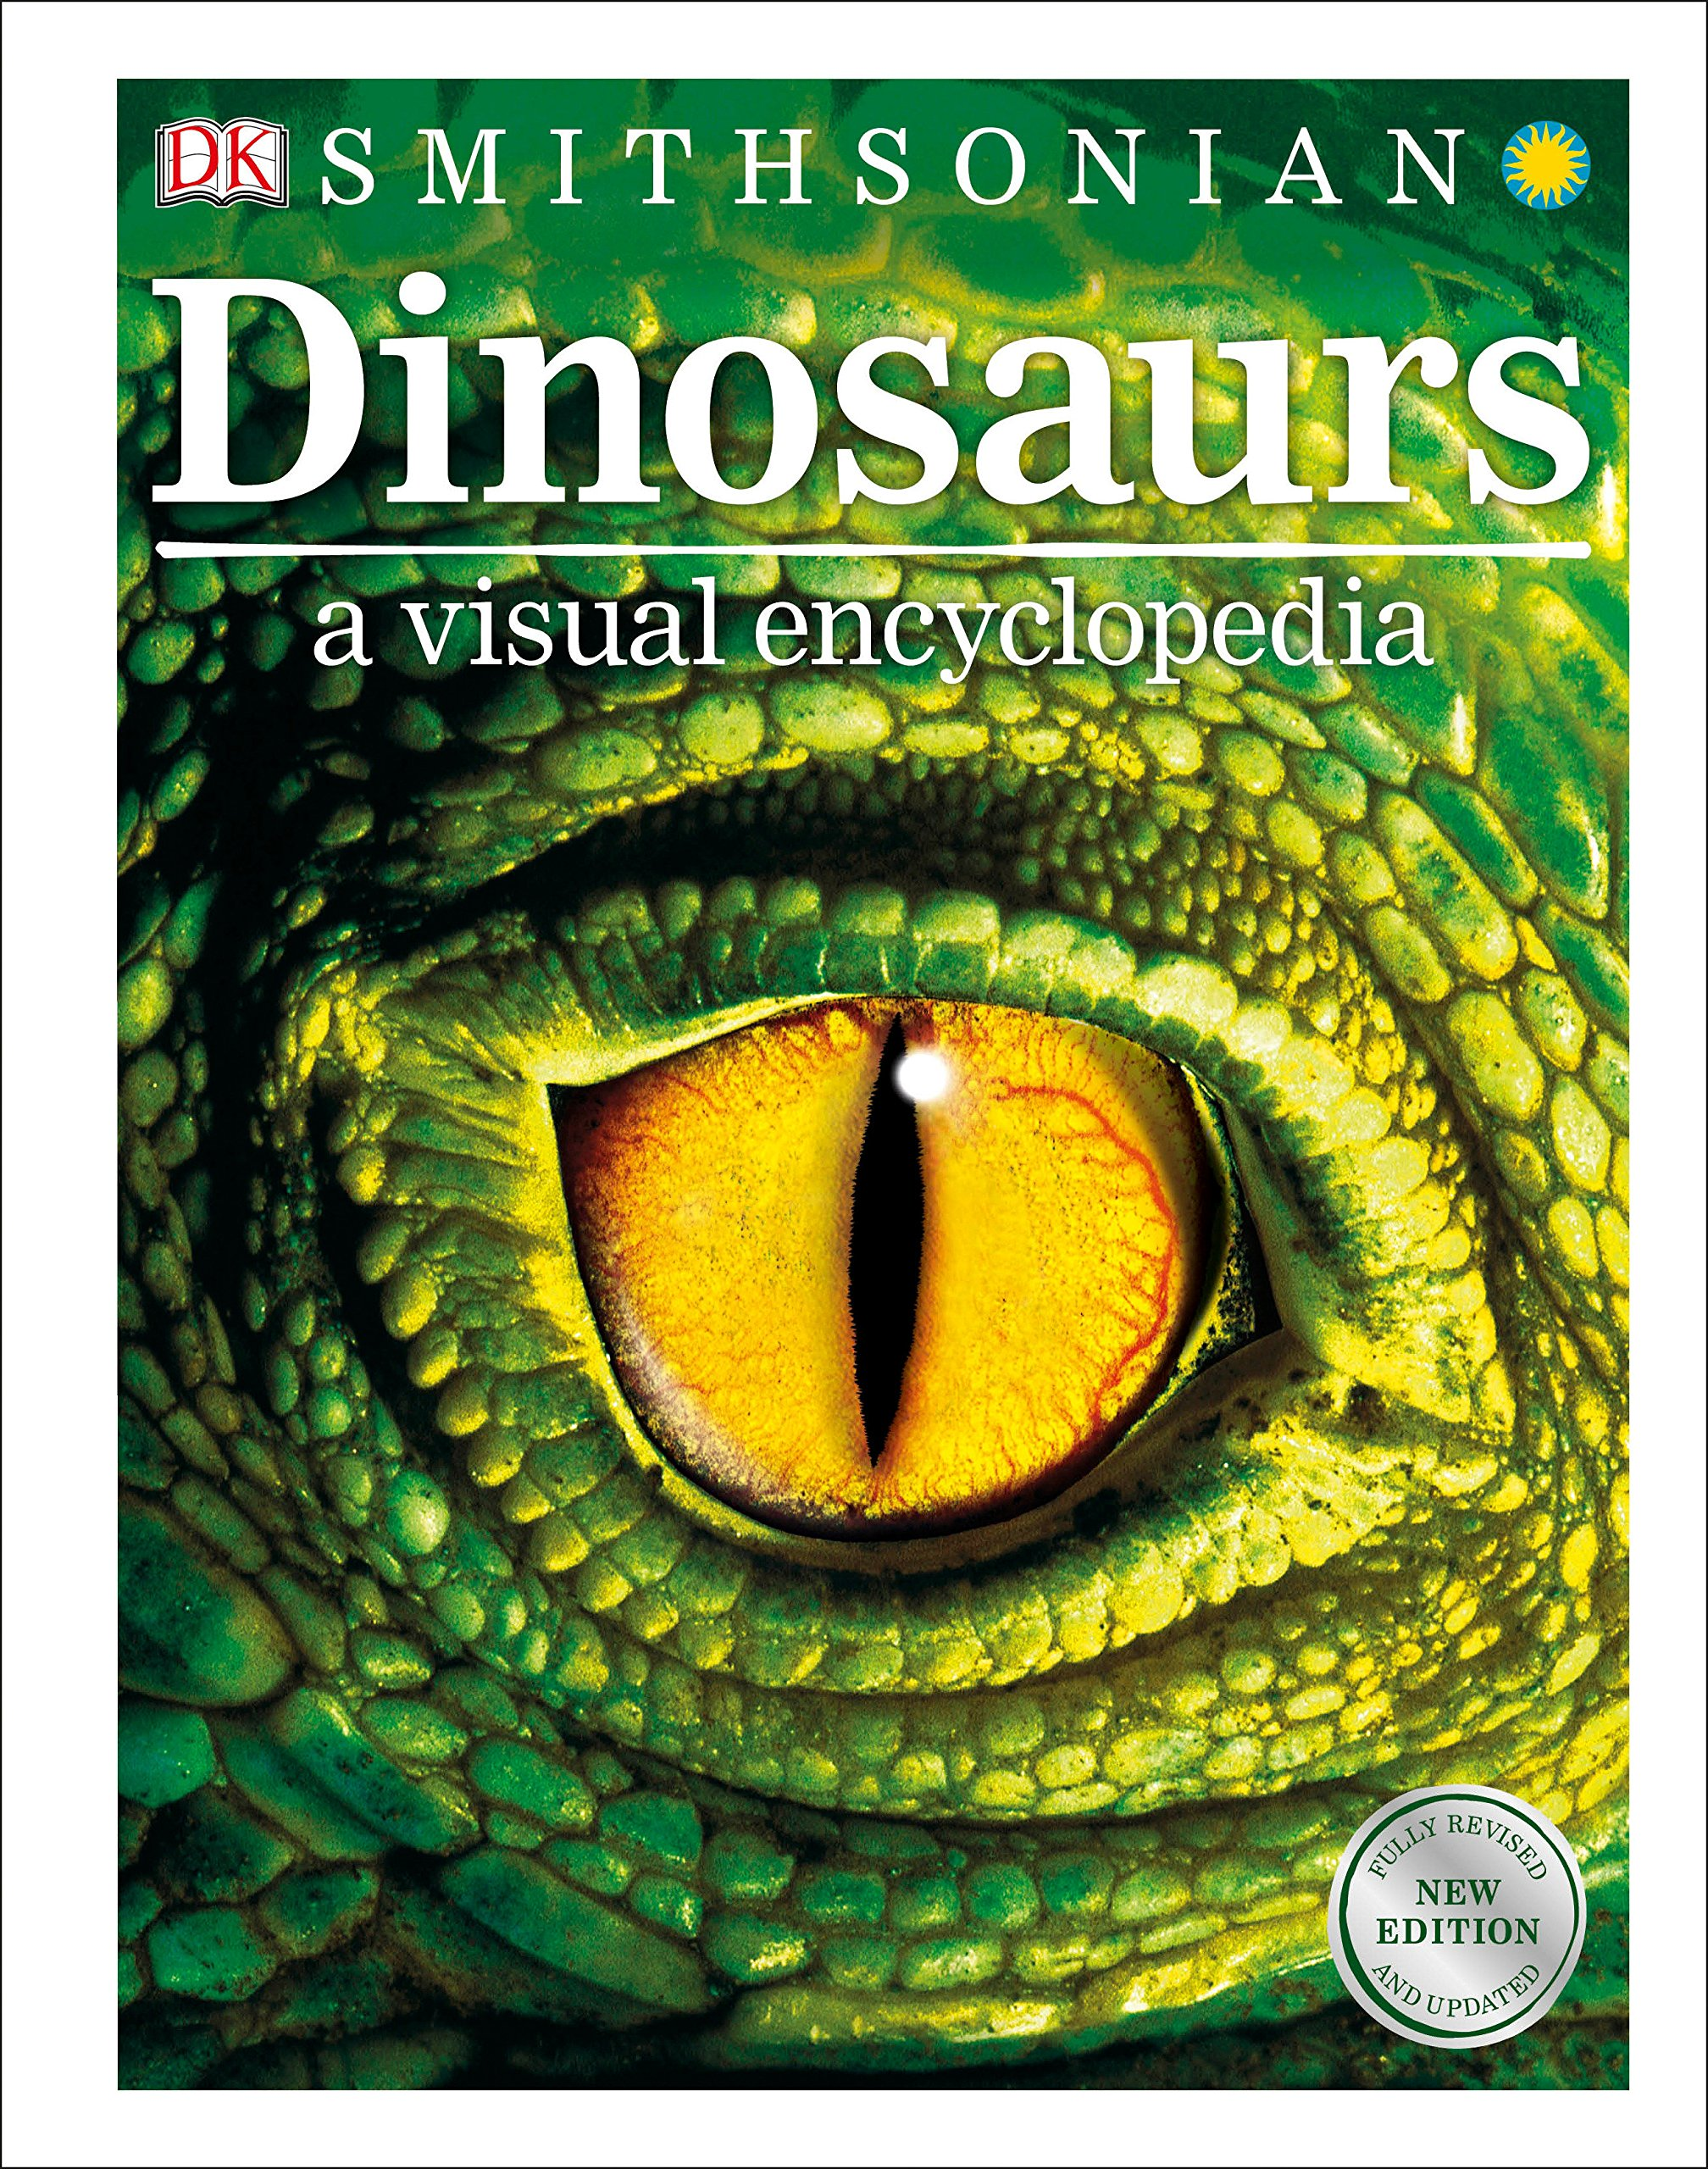 Dinosaurs: A Visual Encyclopedia, 2nd Edition by DK Children